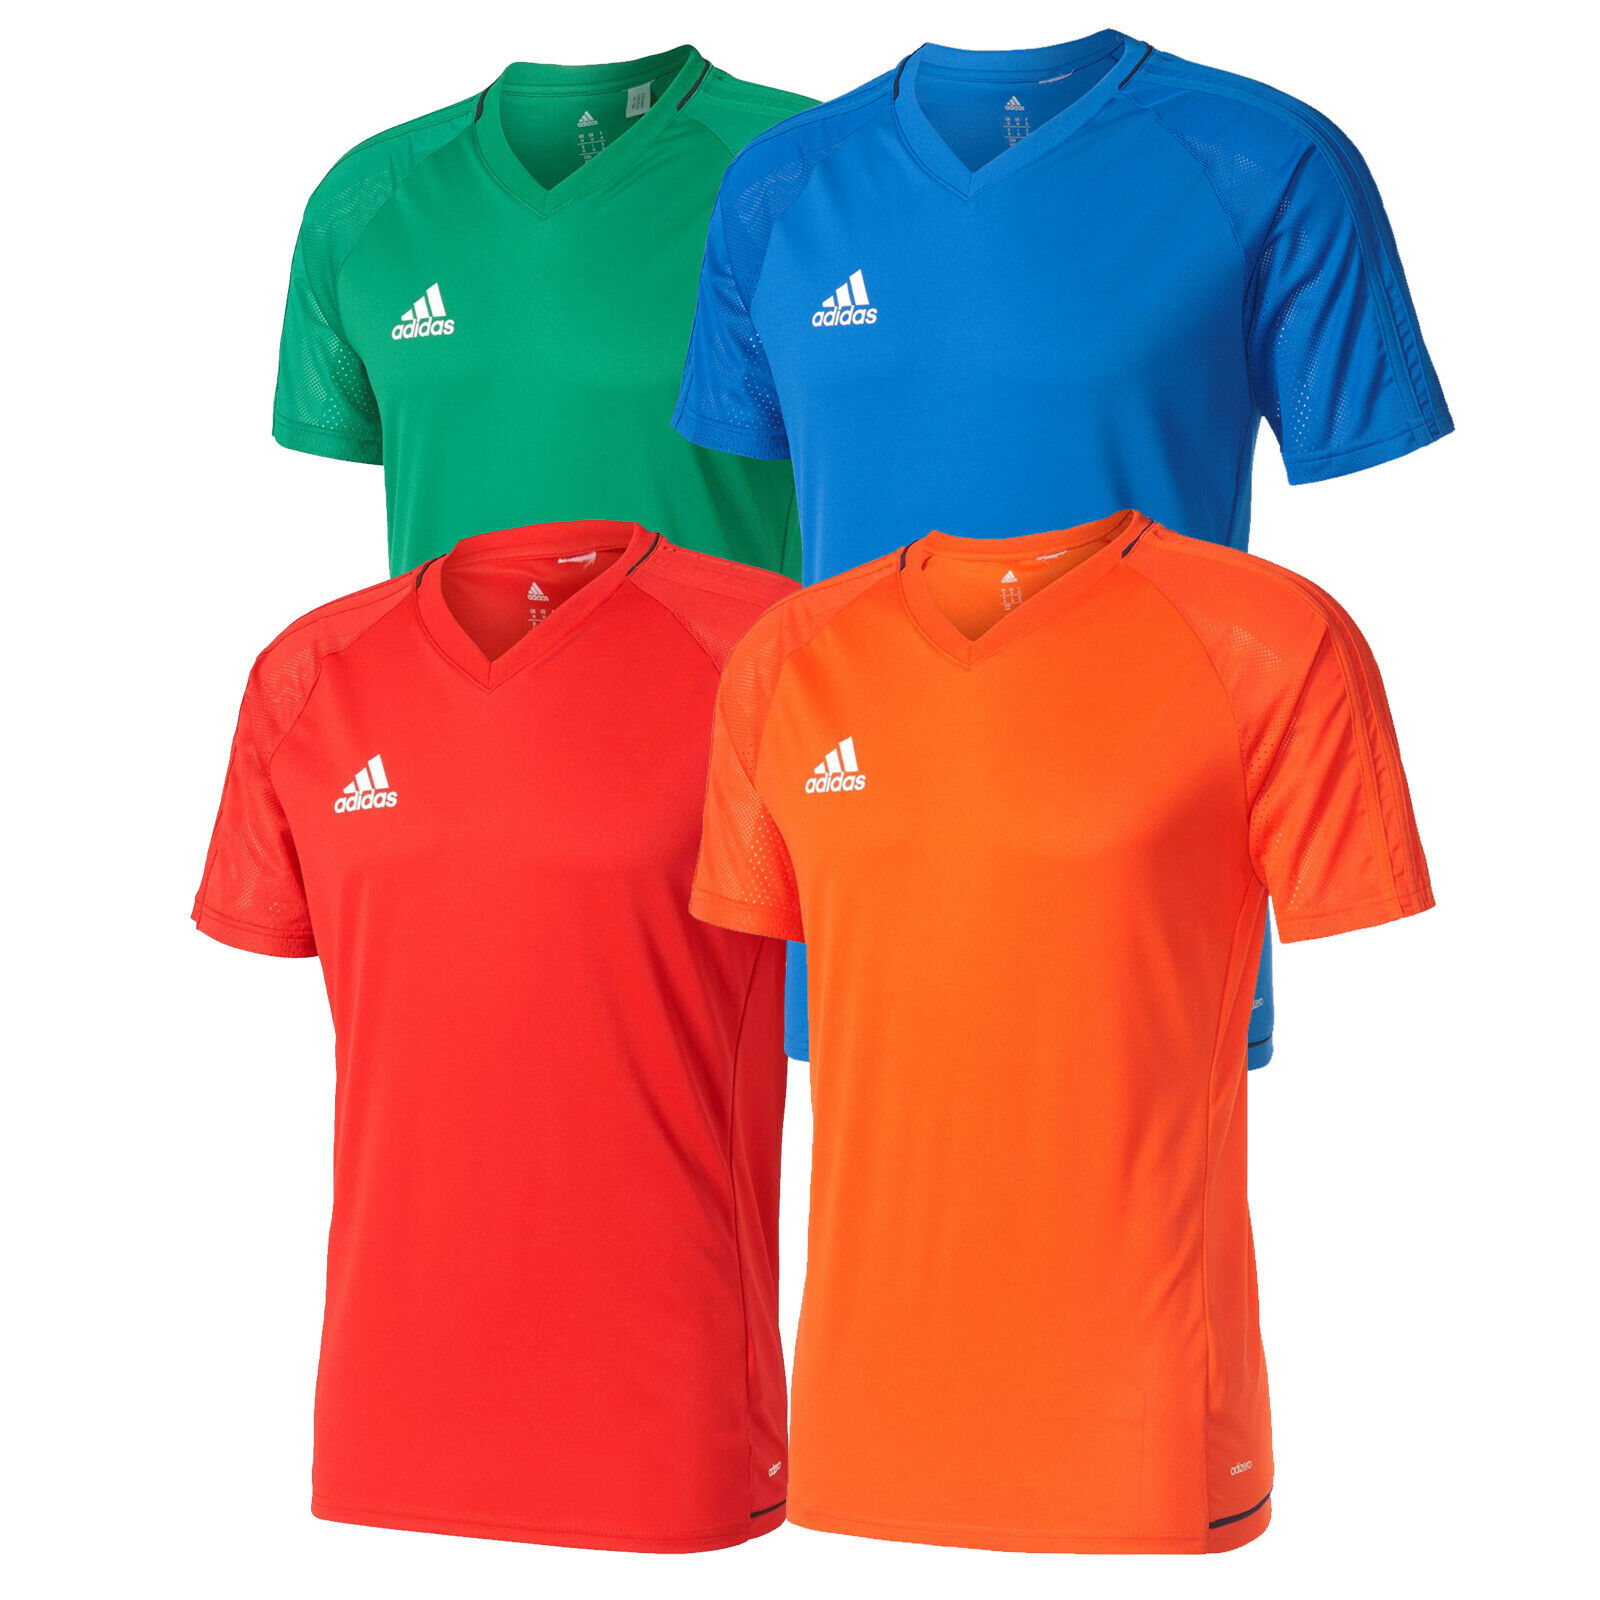 54b42249 adidas Tiro 17 Training Jersey 3 Stripe Top Mens Climalite New | eBay